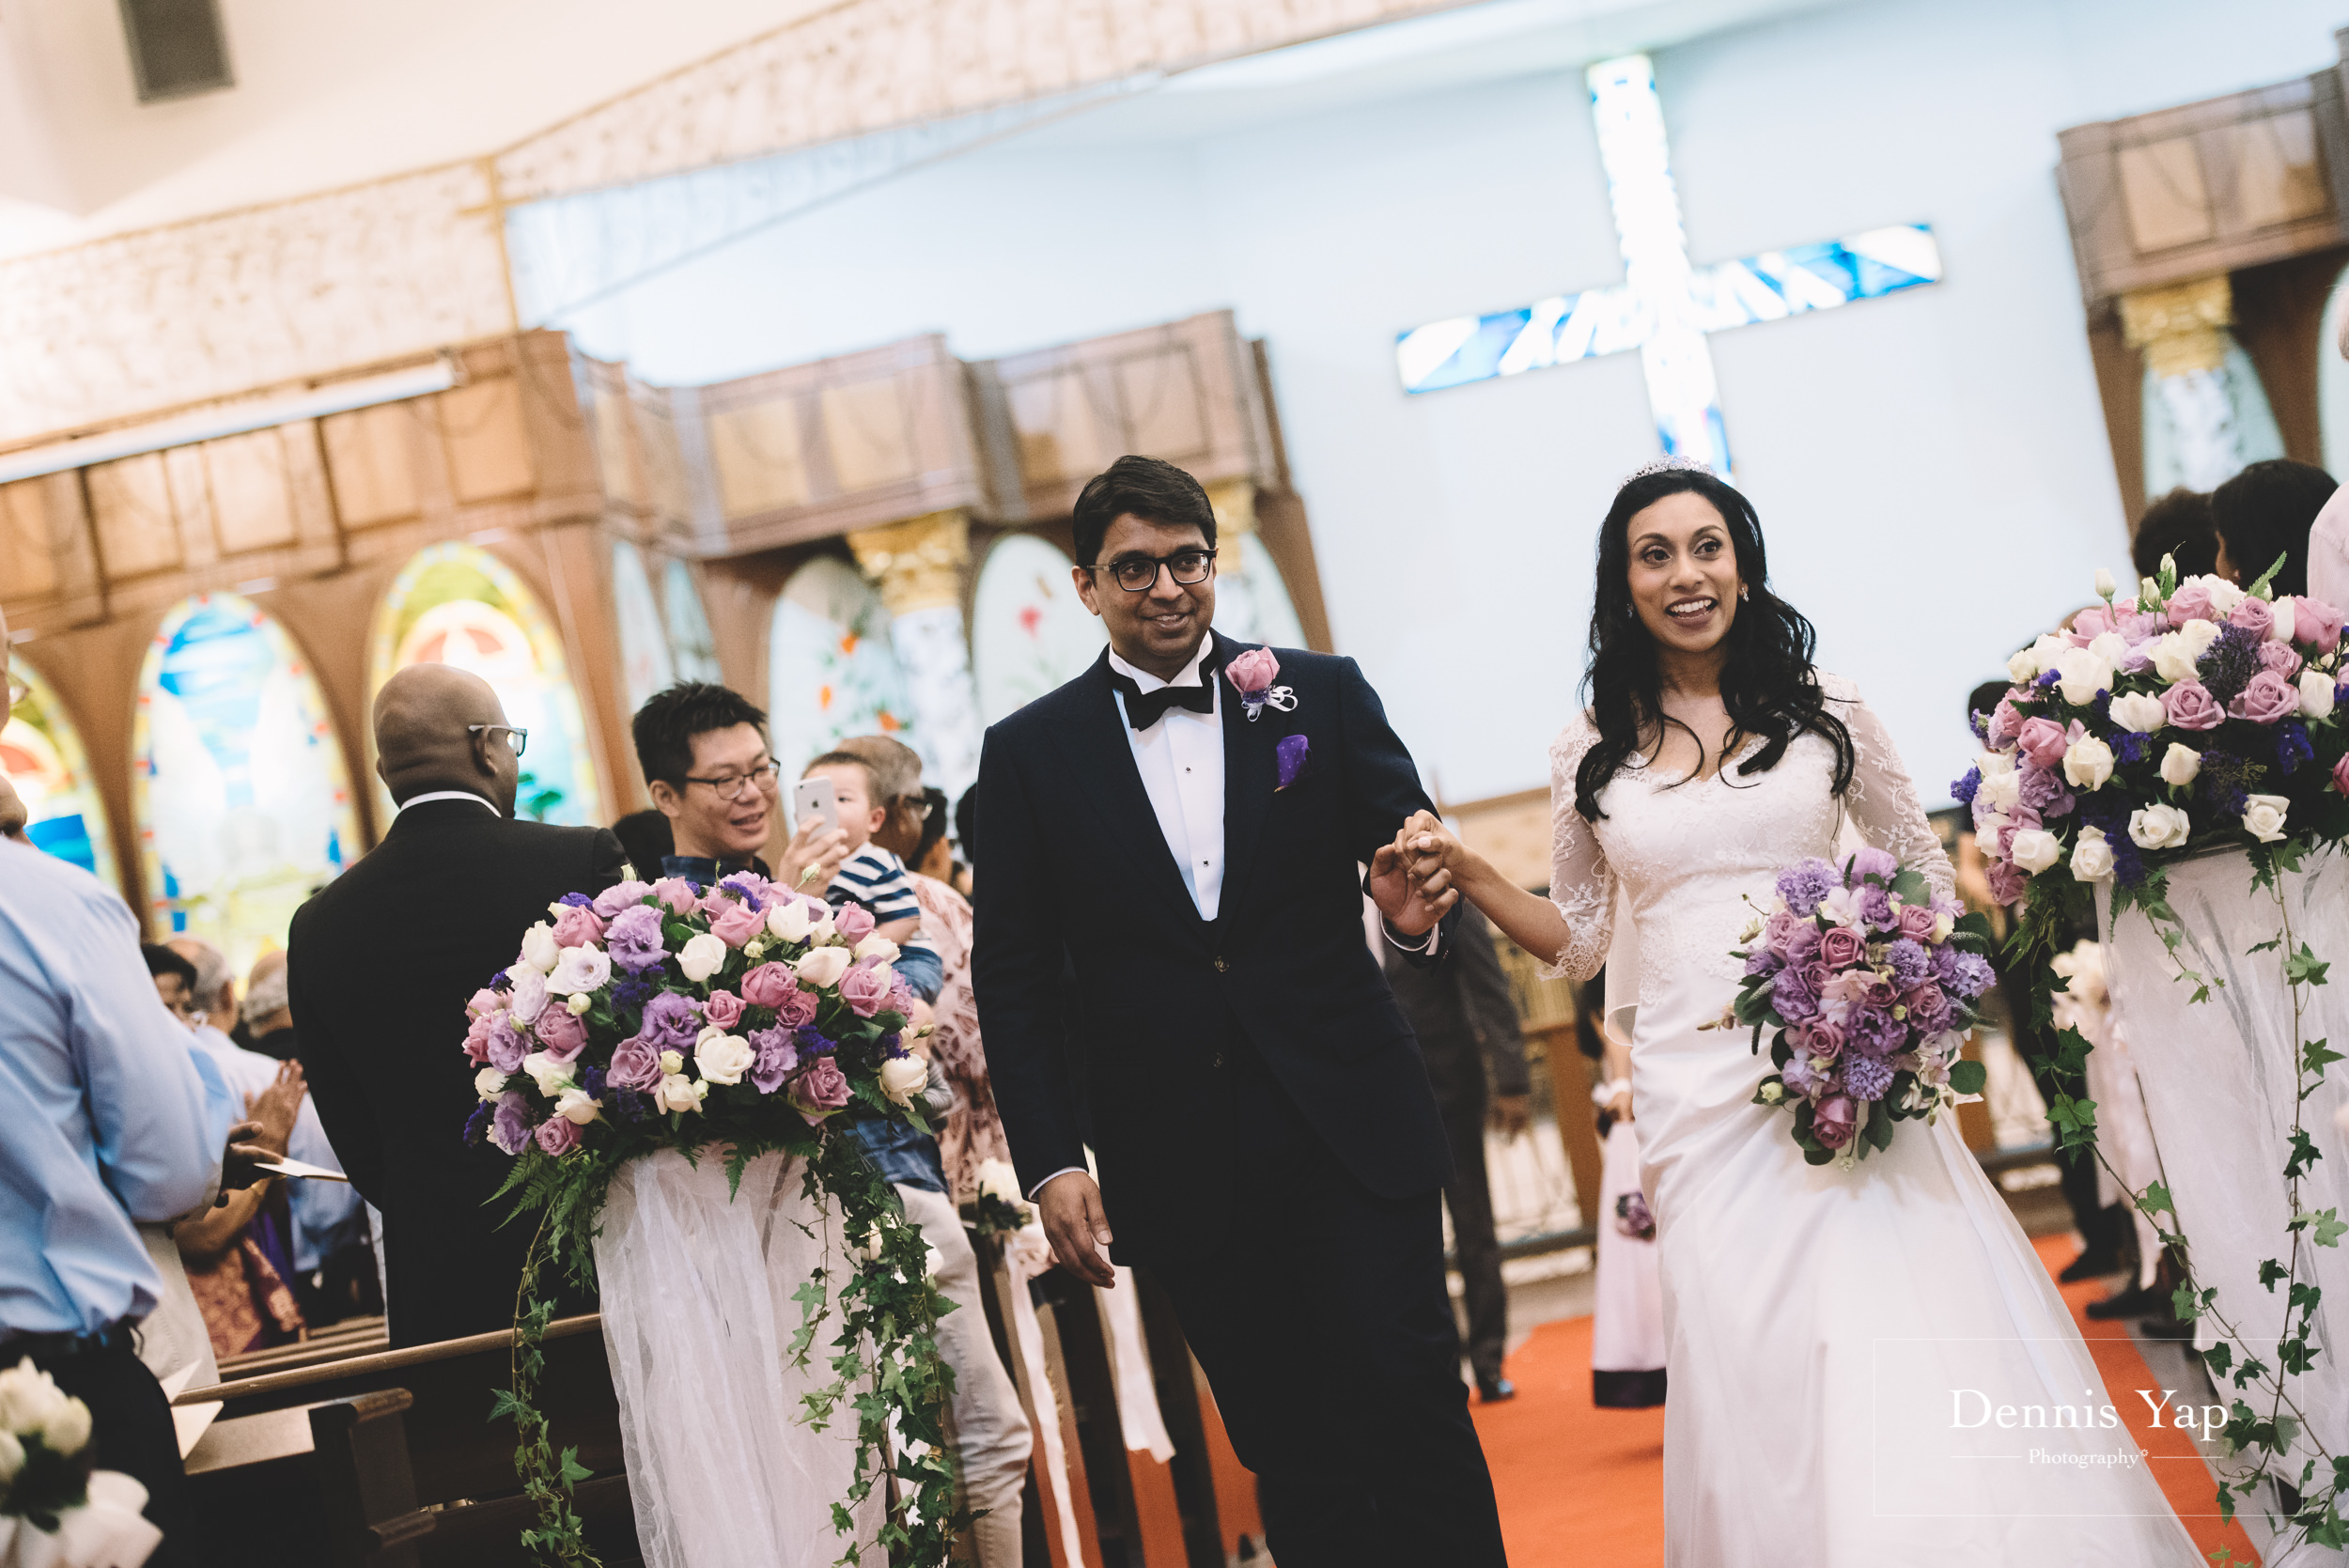 arun angela church wedding st peter bangsar dennis yap photography-25.jpg